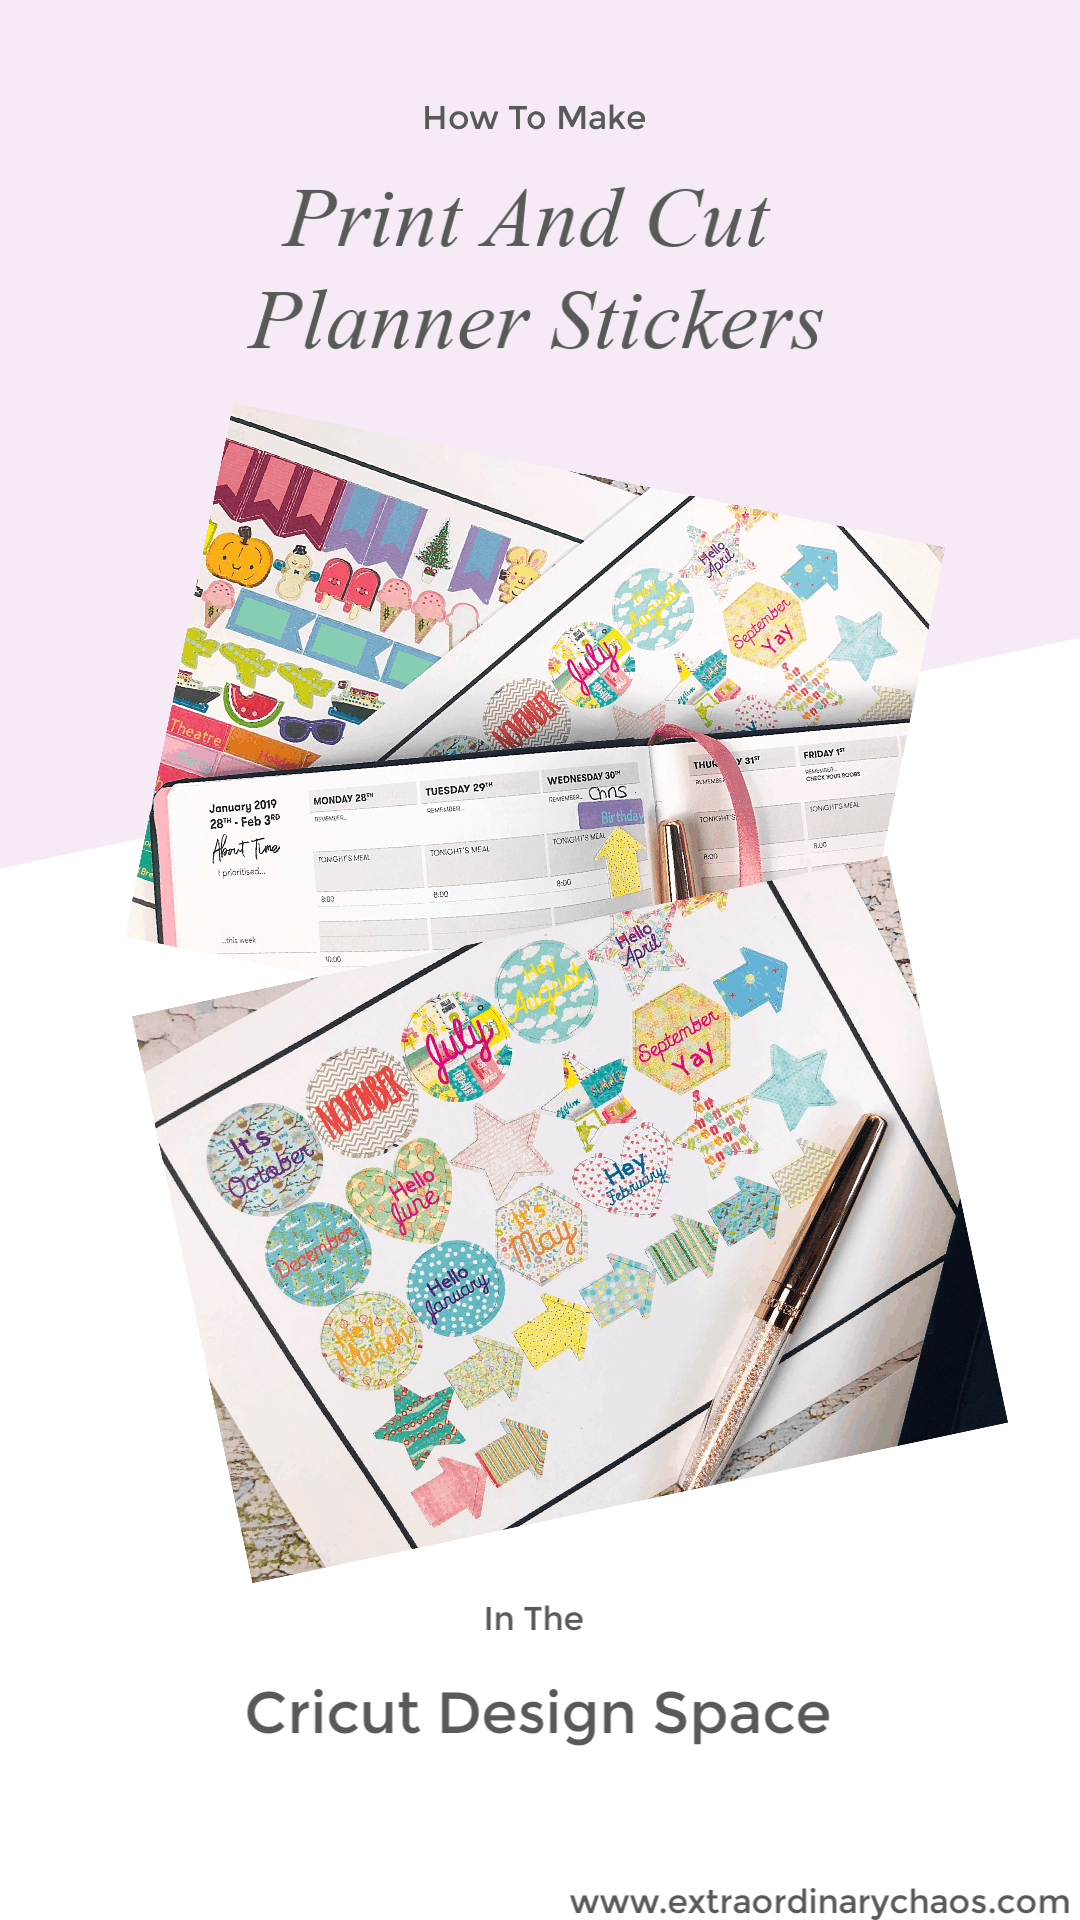 Printable Planner Sticker Cricut Cut And Print Template and how to make planner and bullet journal stickers in Cricut Design Space